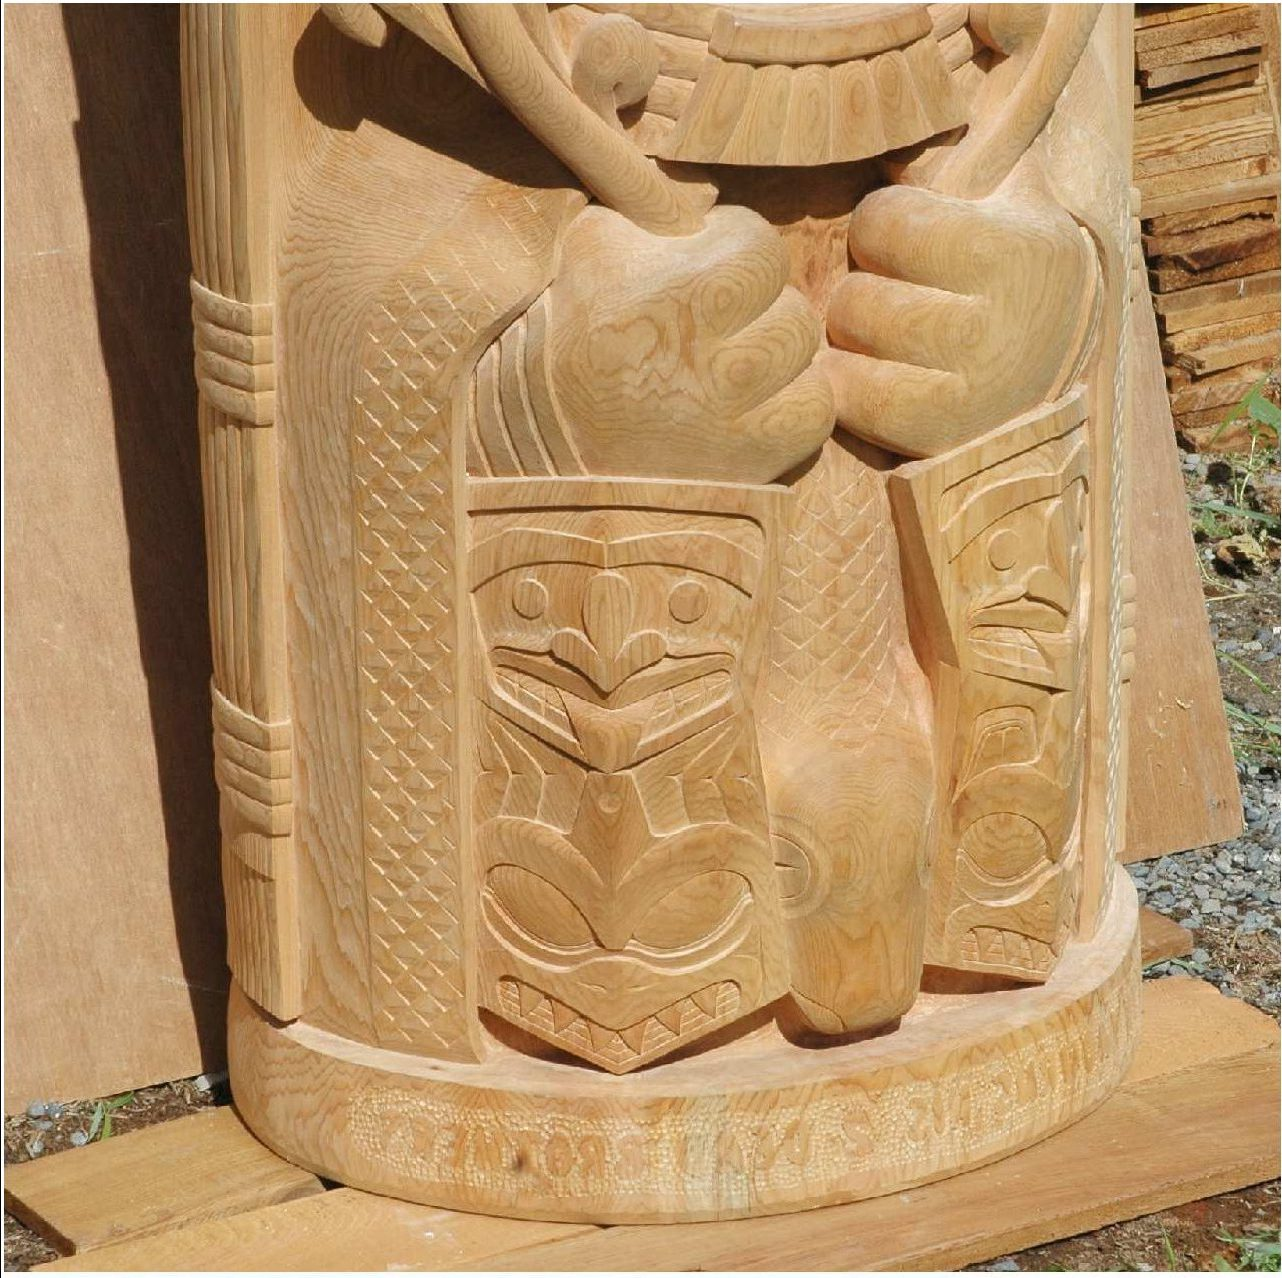 detail from carved wooden totem - 2 coppers